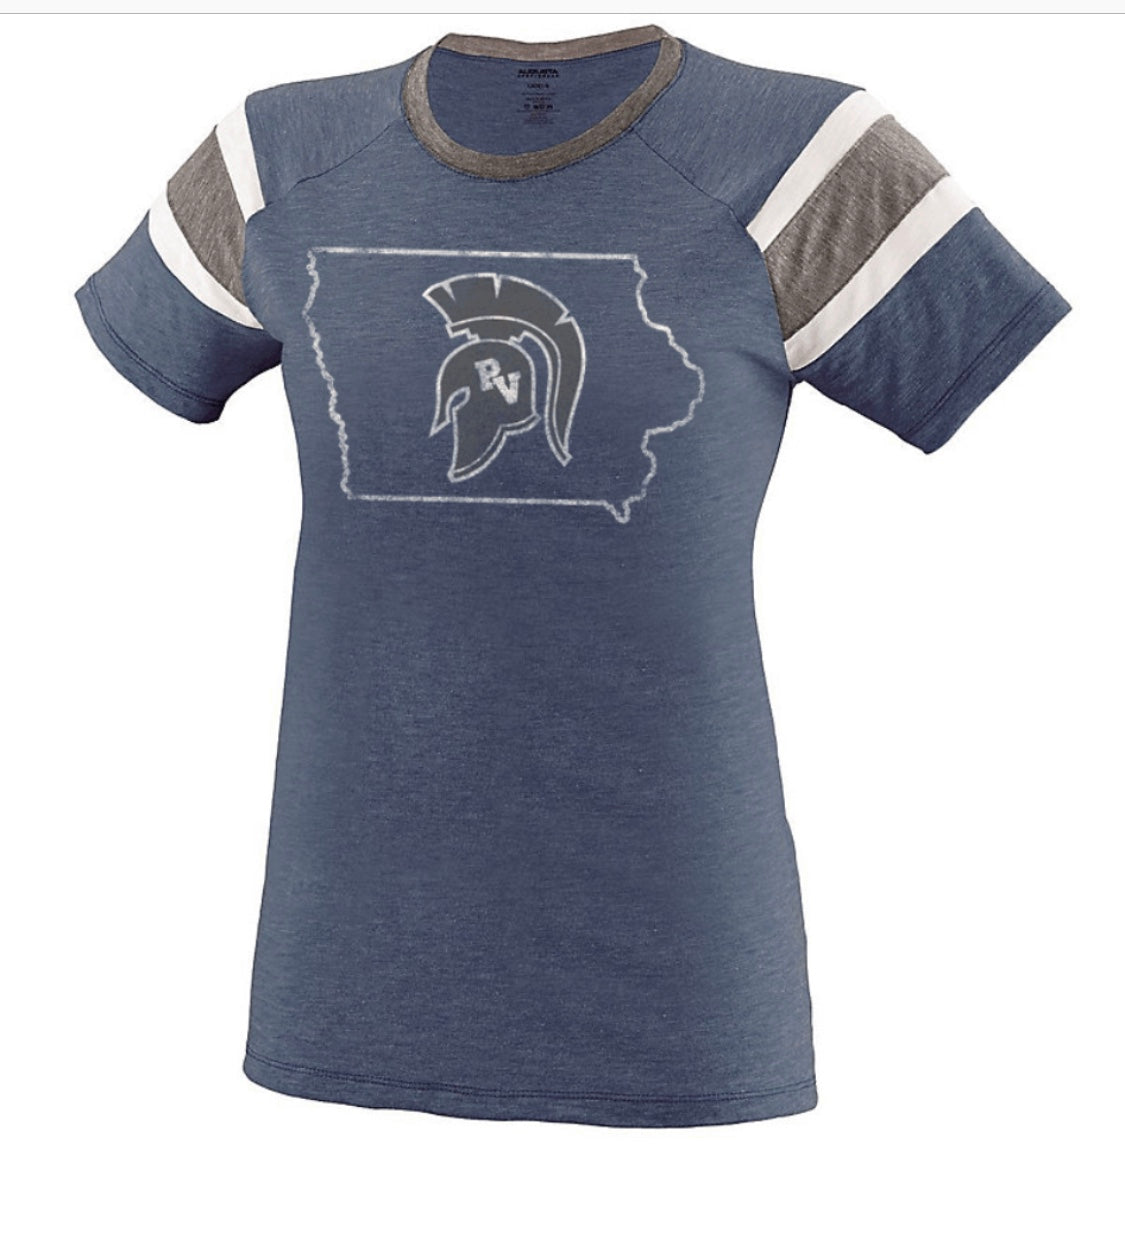 Vintage Fanatic Tee with Iowa Logo - avail. in girls & ladies sizes